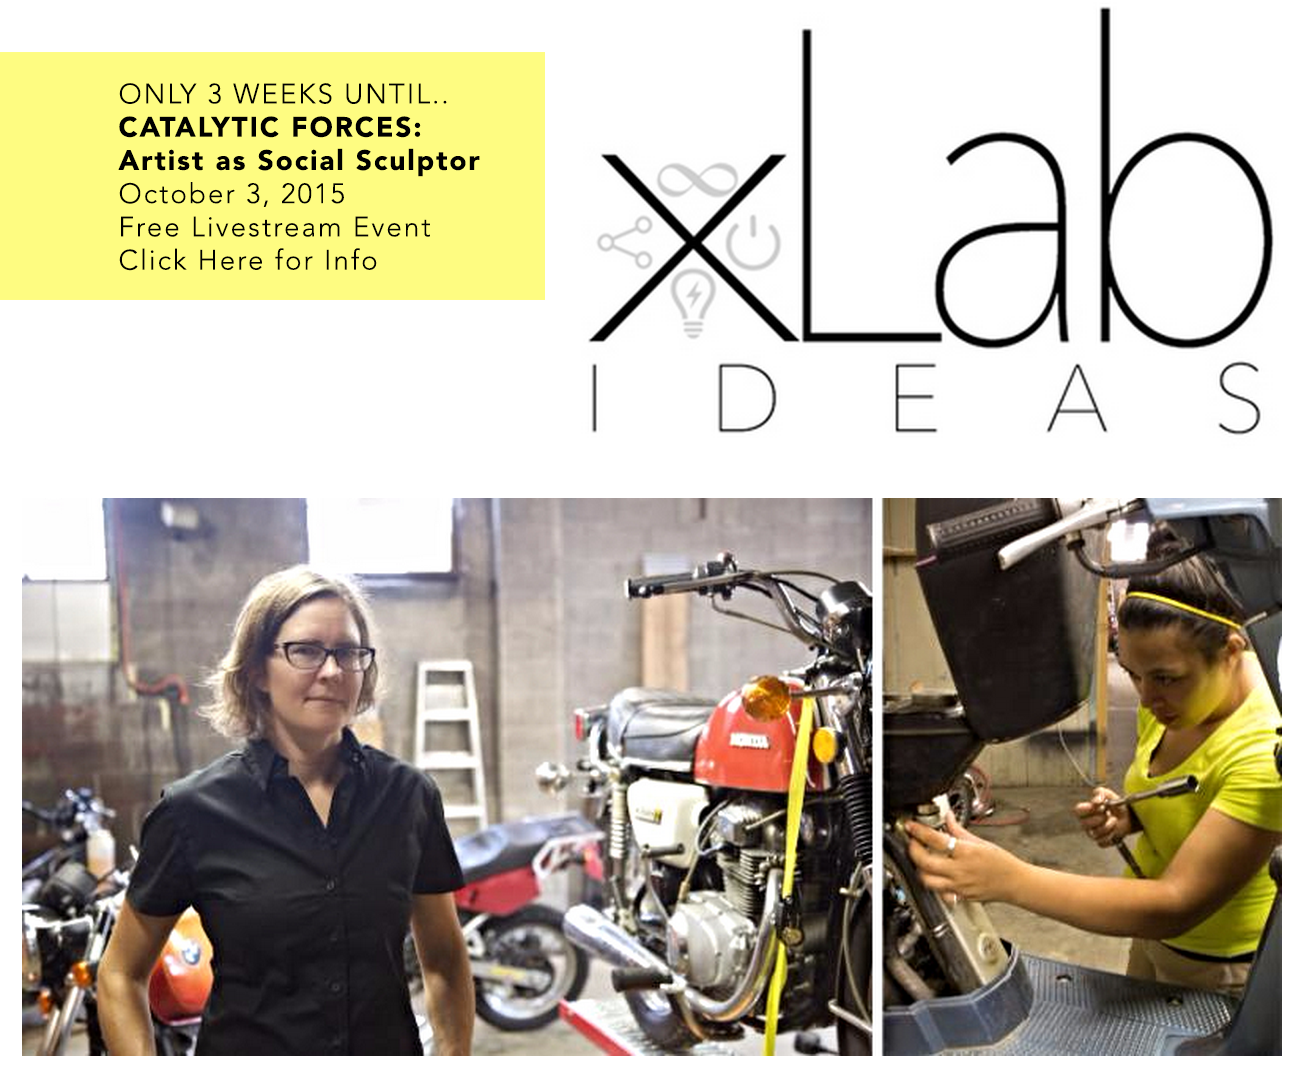 Left: Artist and motorcycle mechanic Sarah Lyon. Right: Workshop participant Cheyenne Orobia. Photos by Josh Miller.